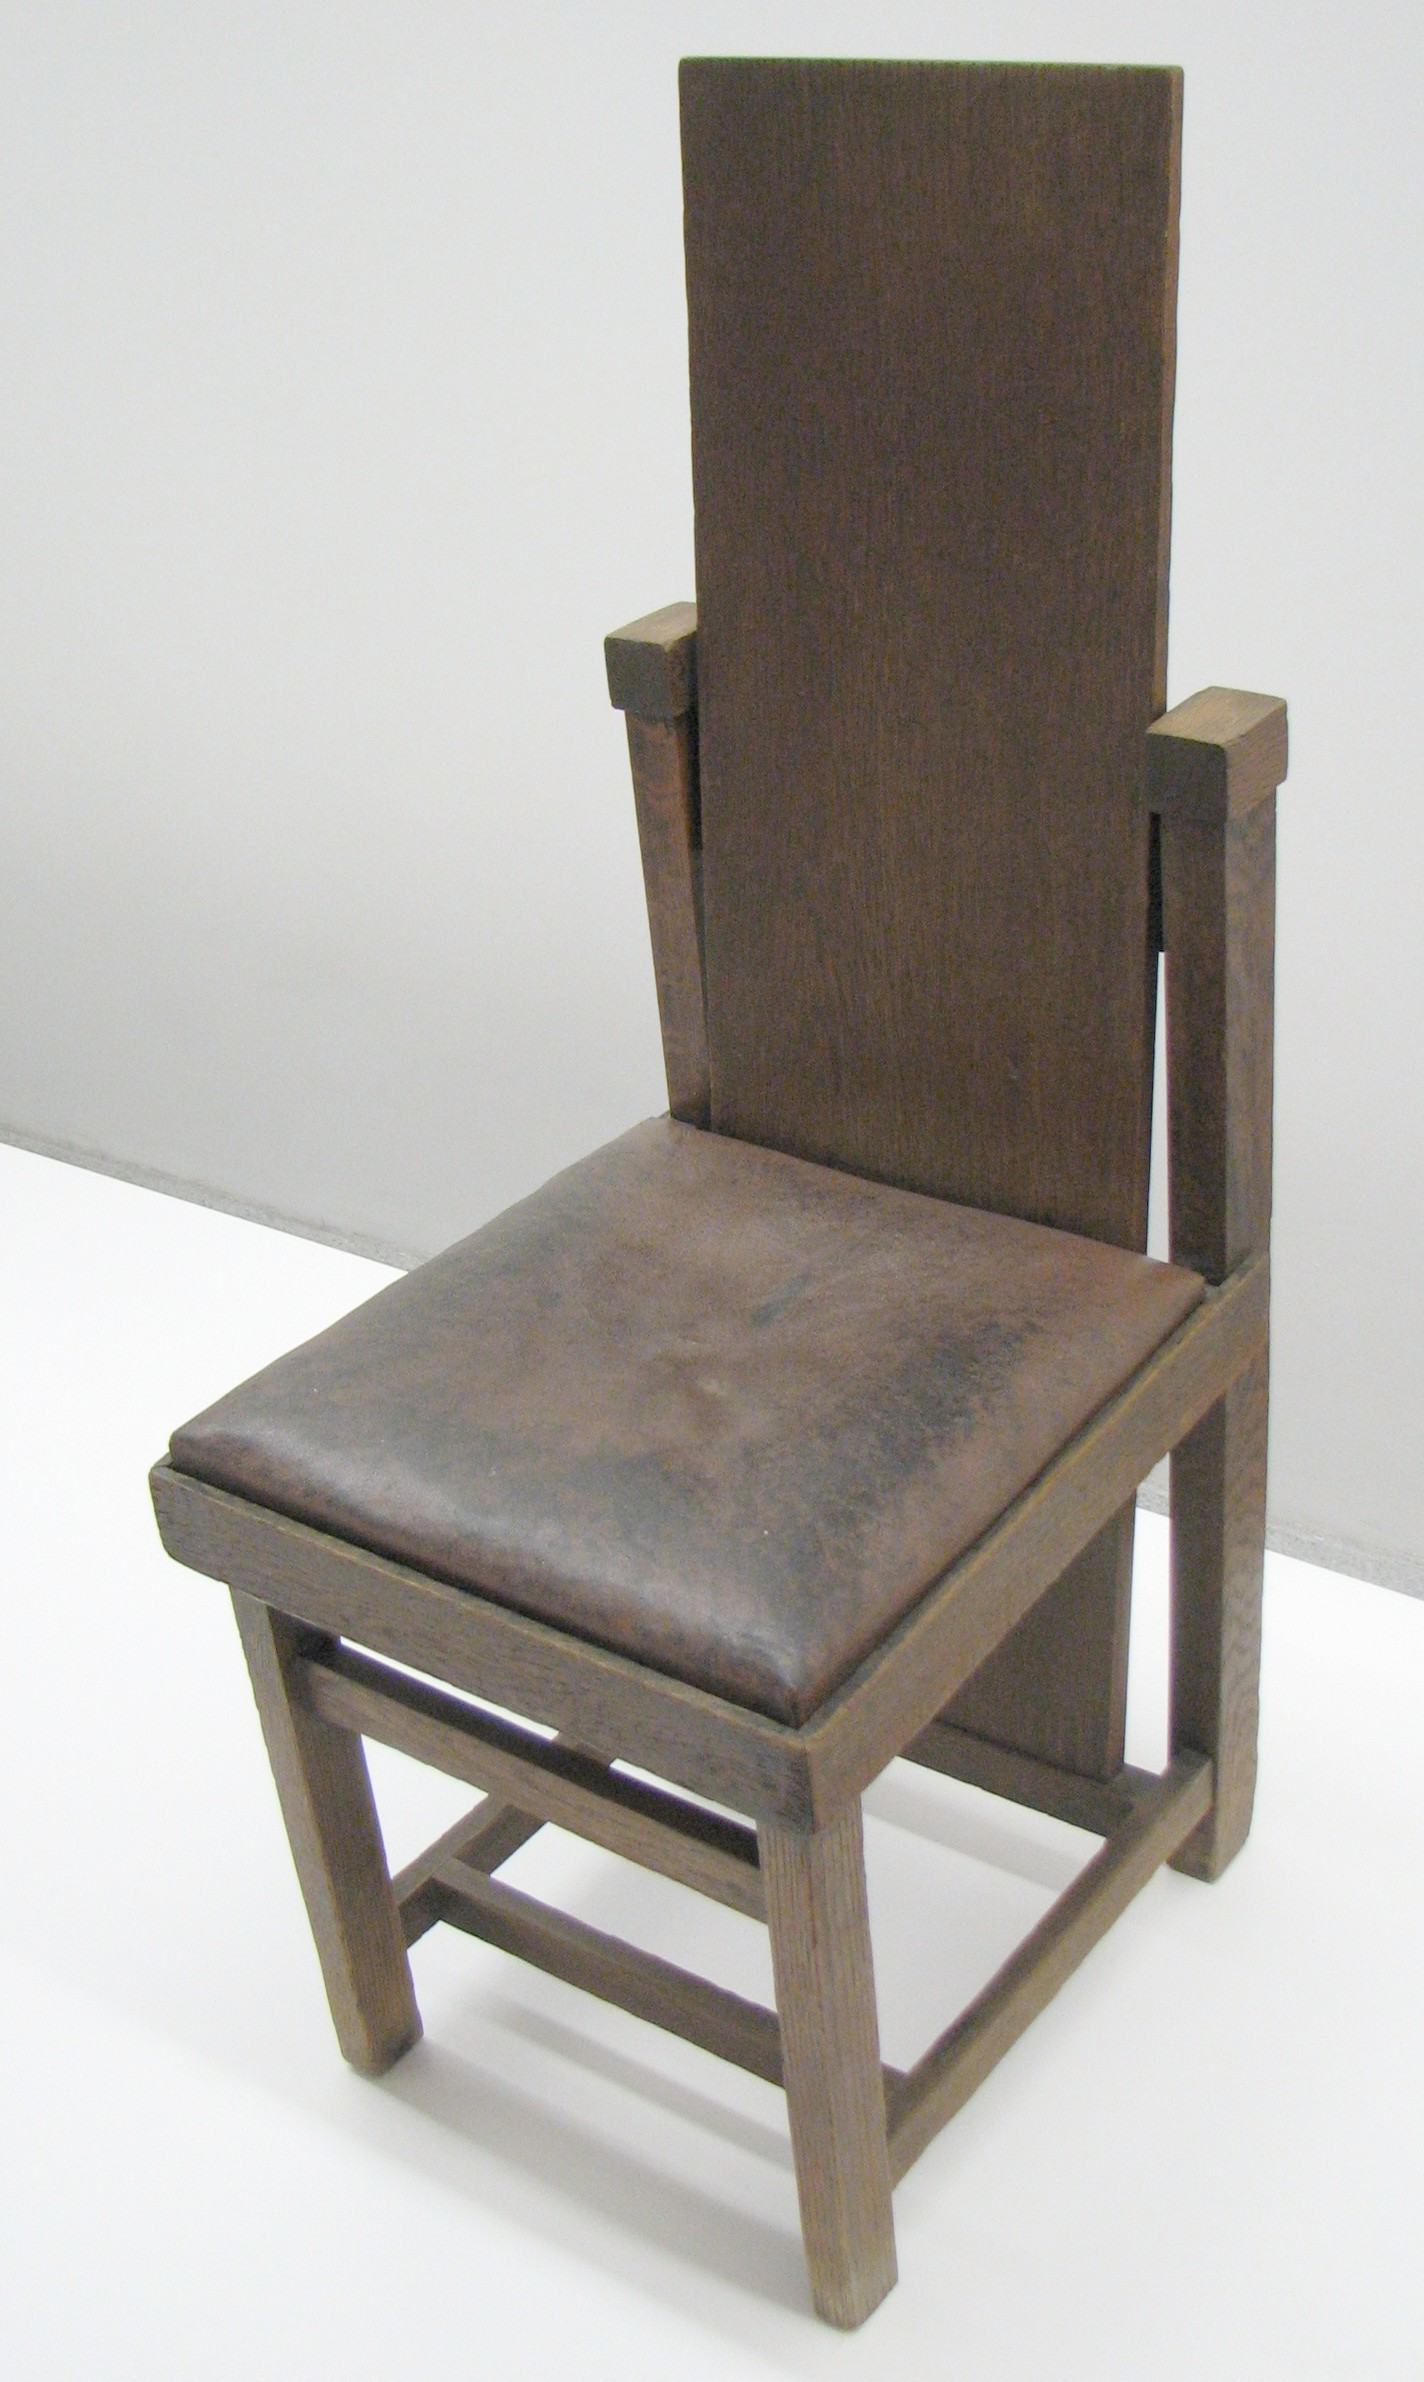 Frank Lloyd Wright Chairs File Frank Lloyd Wright Chair 1903 Jpg Wikimedia Commons